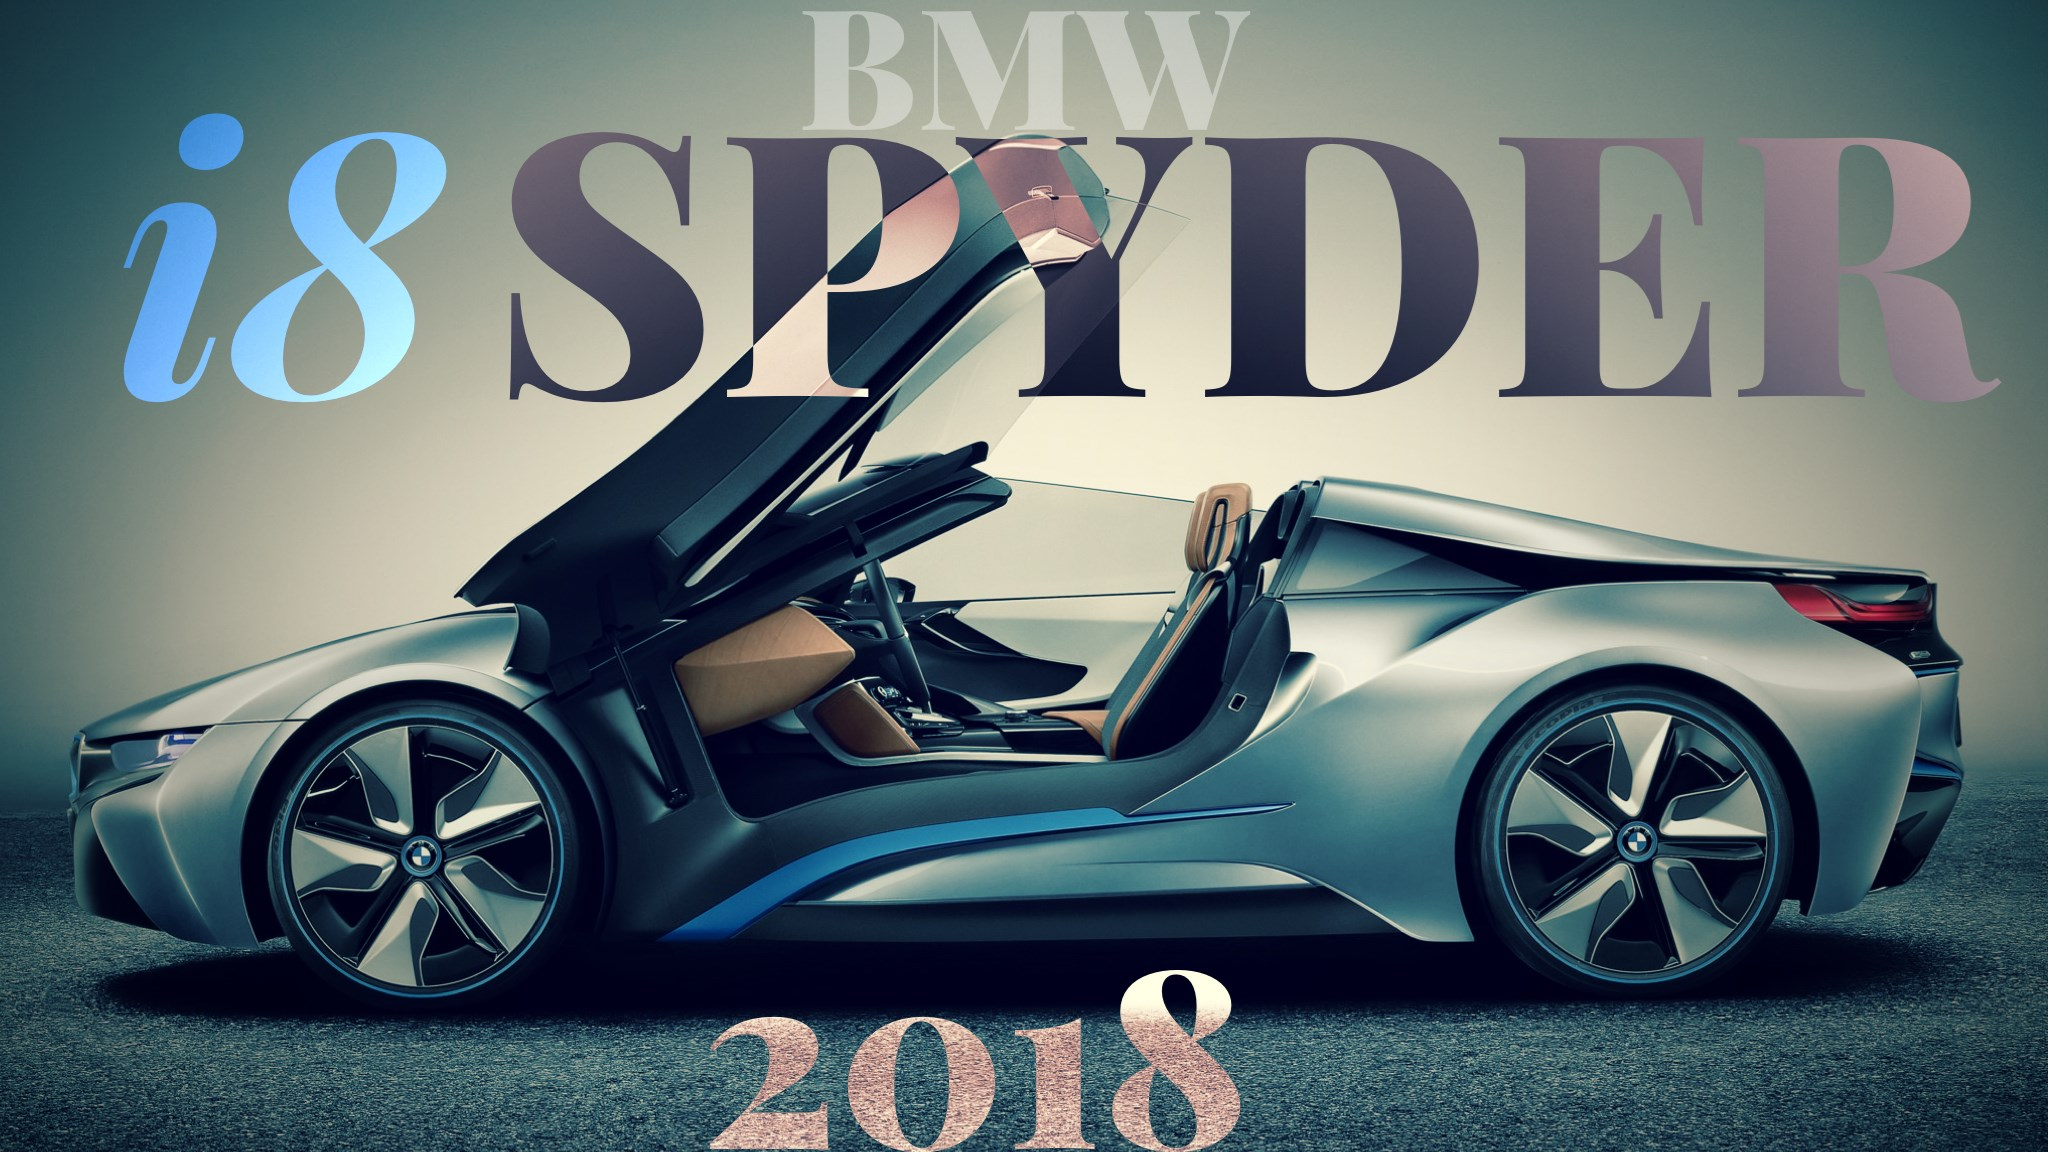 BMW Chief Confirms i8 Spyder For 2018 Arrival